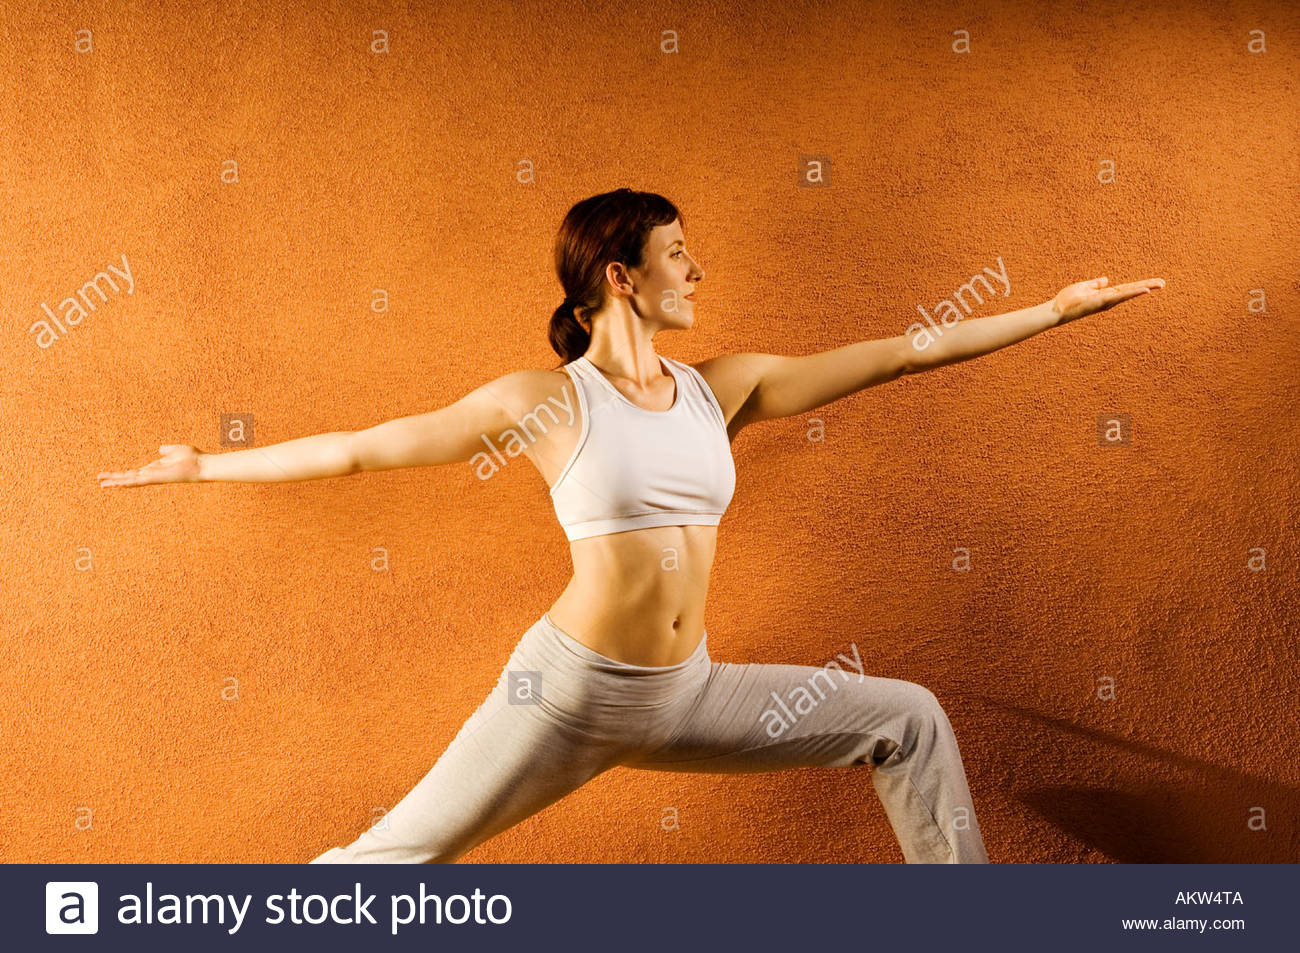 Adult woman in Yoga like stretch pose looking forward wtih palms up strength beauty balance and  grace - Stock Image